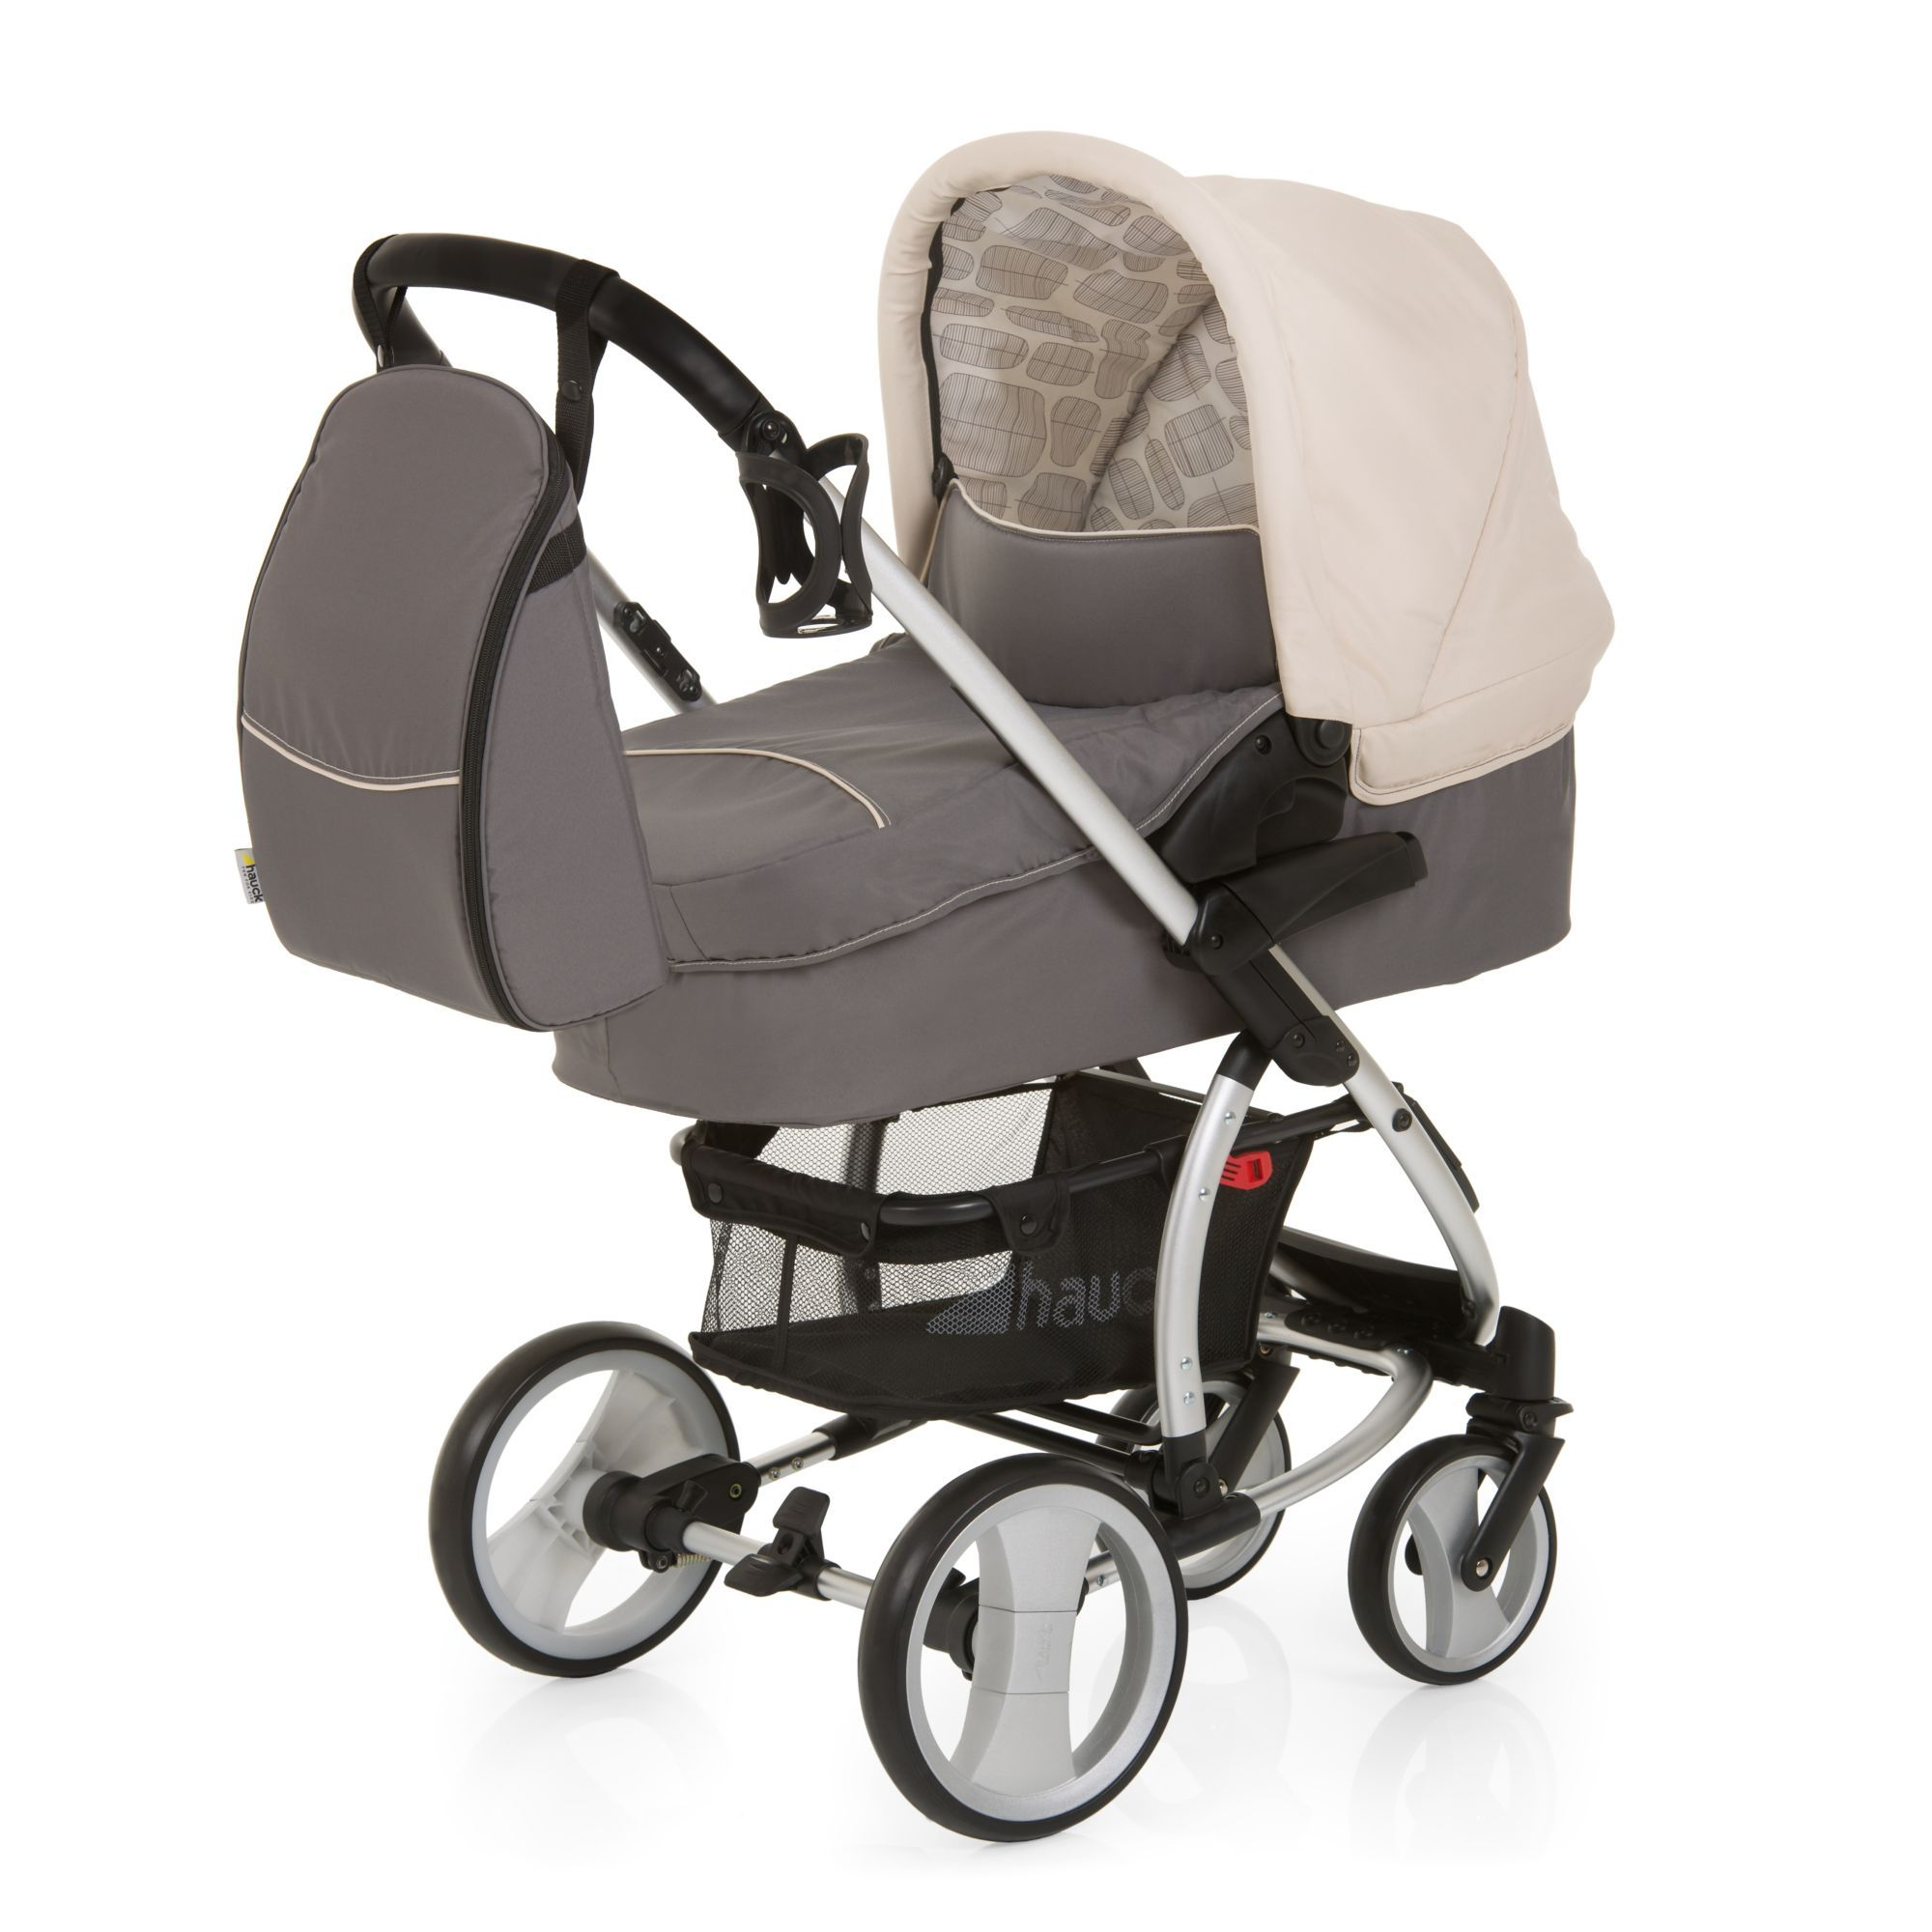 Hauck Malibu XL AIO Travel System Rock Hauck